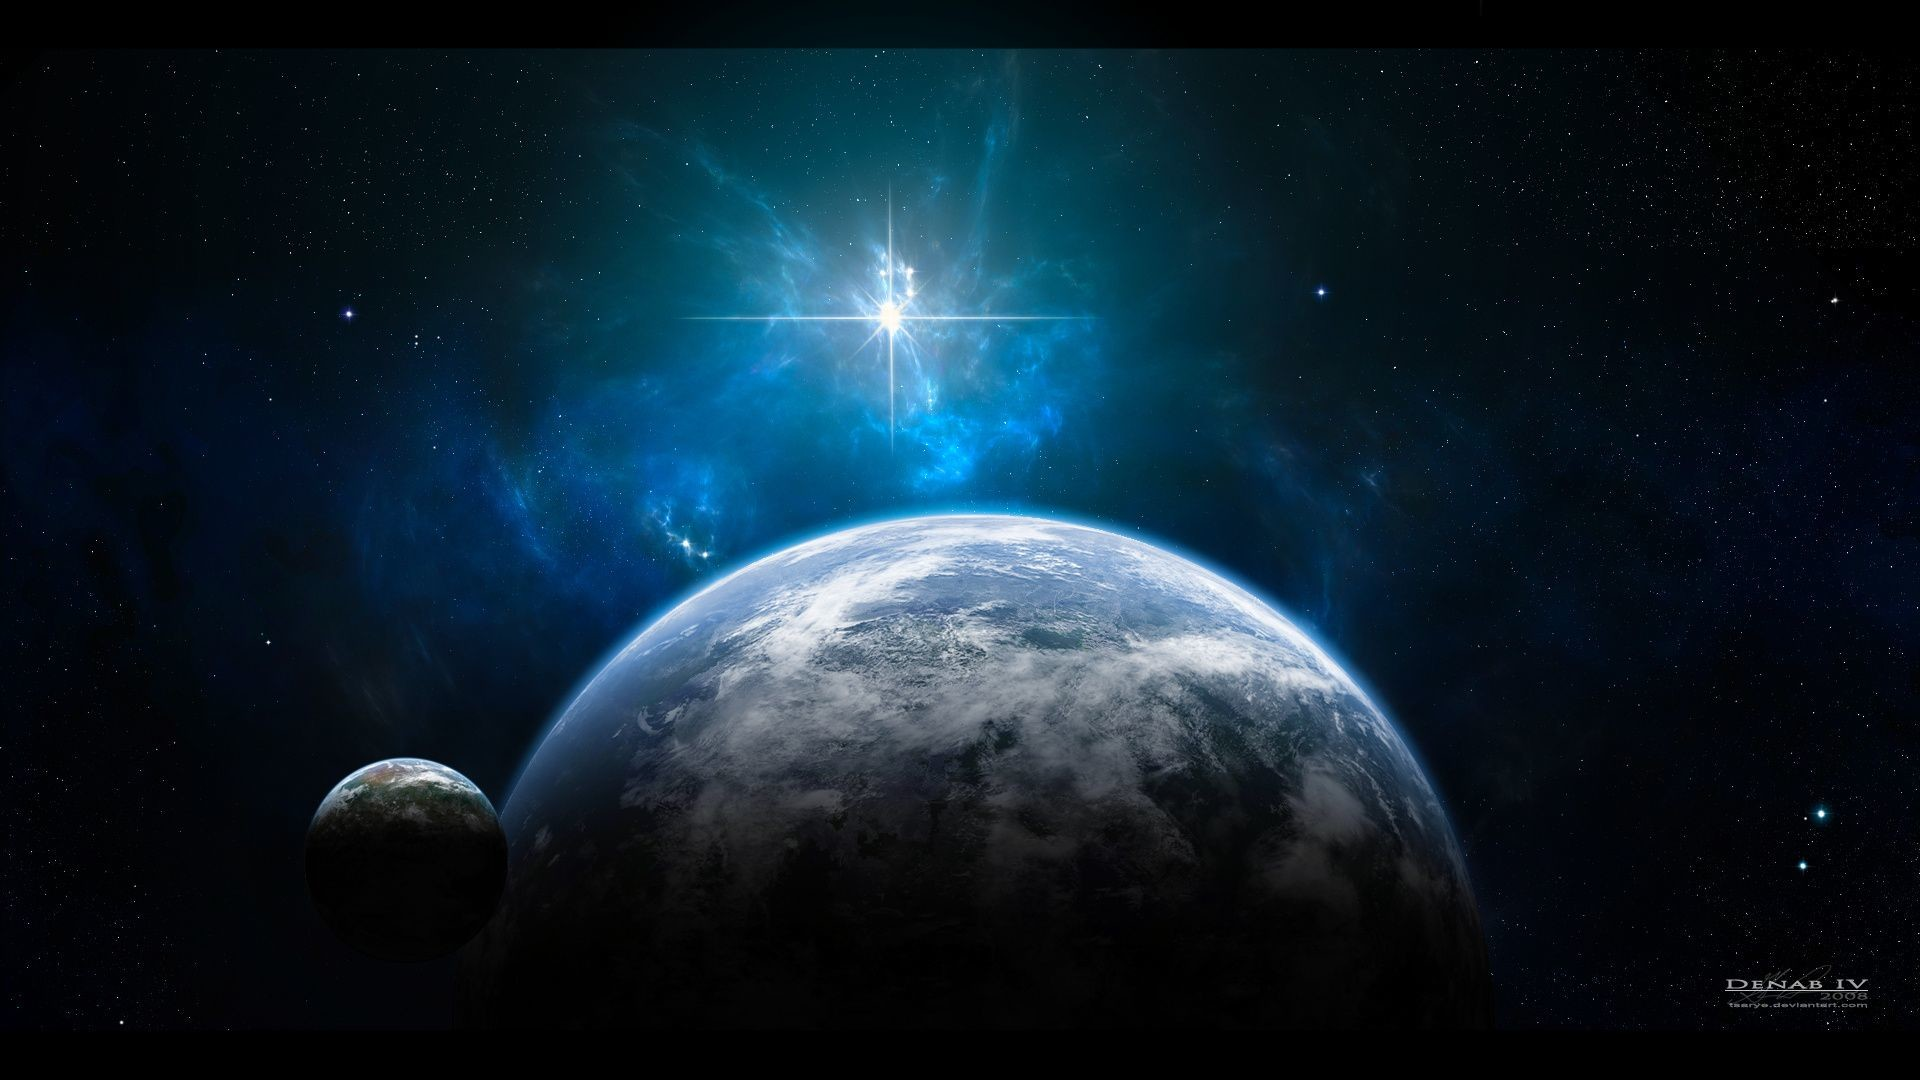 Space Earth Wallpaper Images Of Earth From Space Wallpapers Wallpapers)